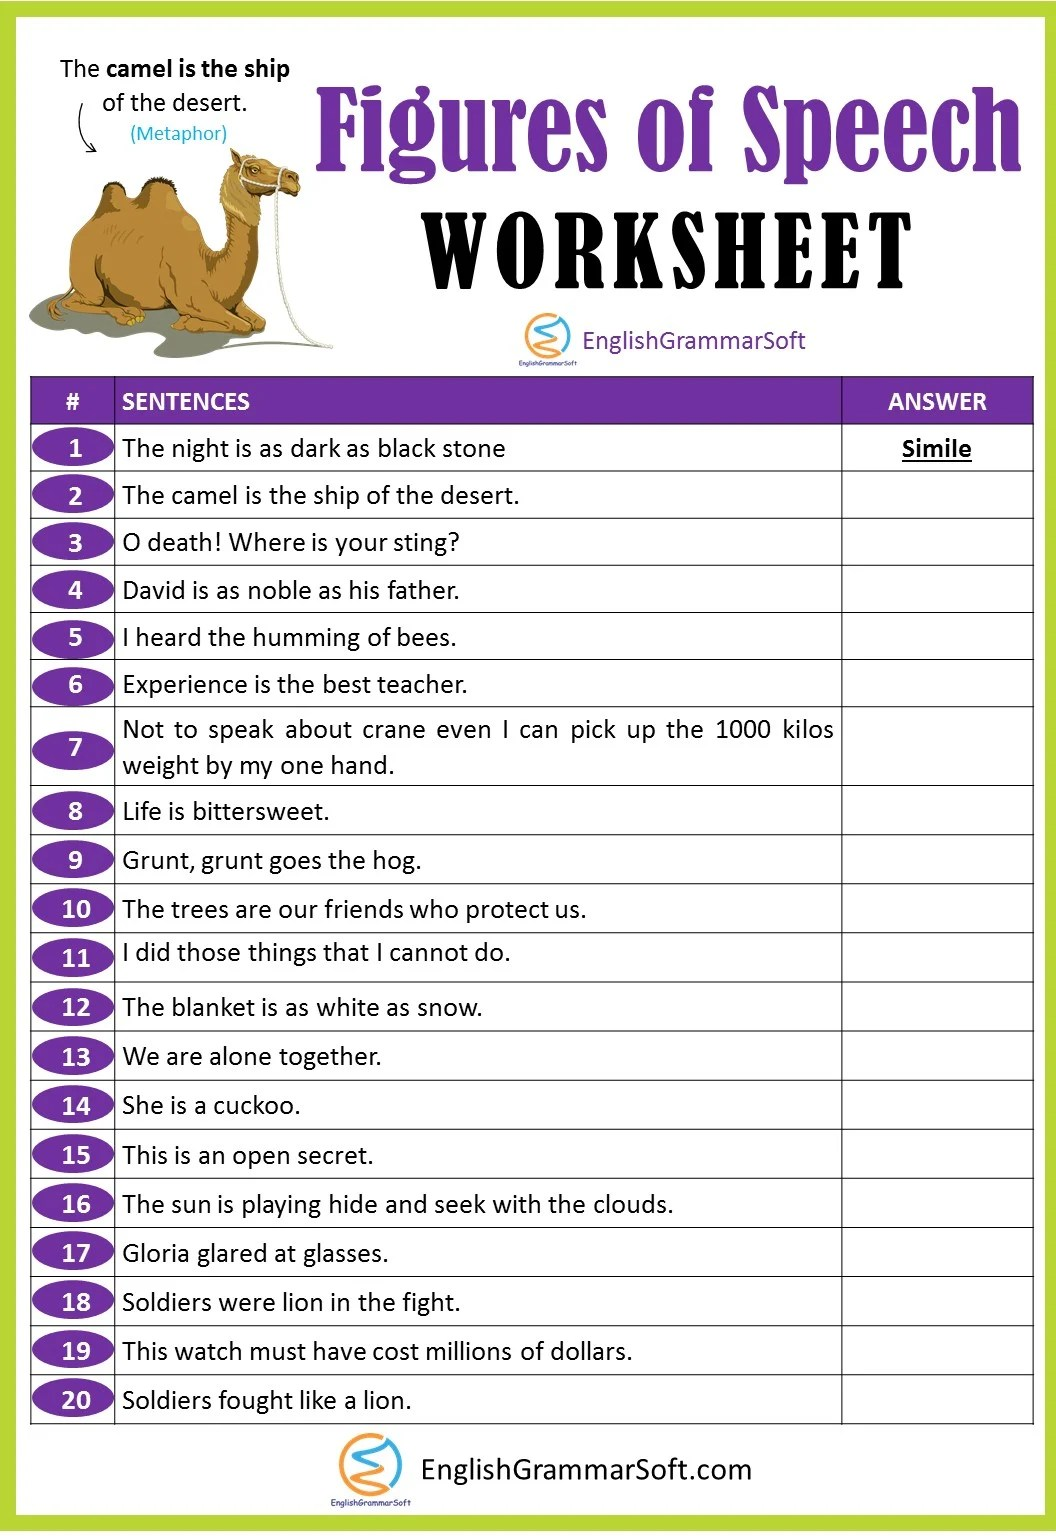 Figures Of Speech Worksheet With Answers